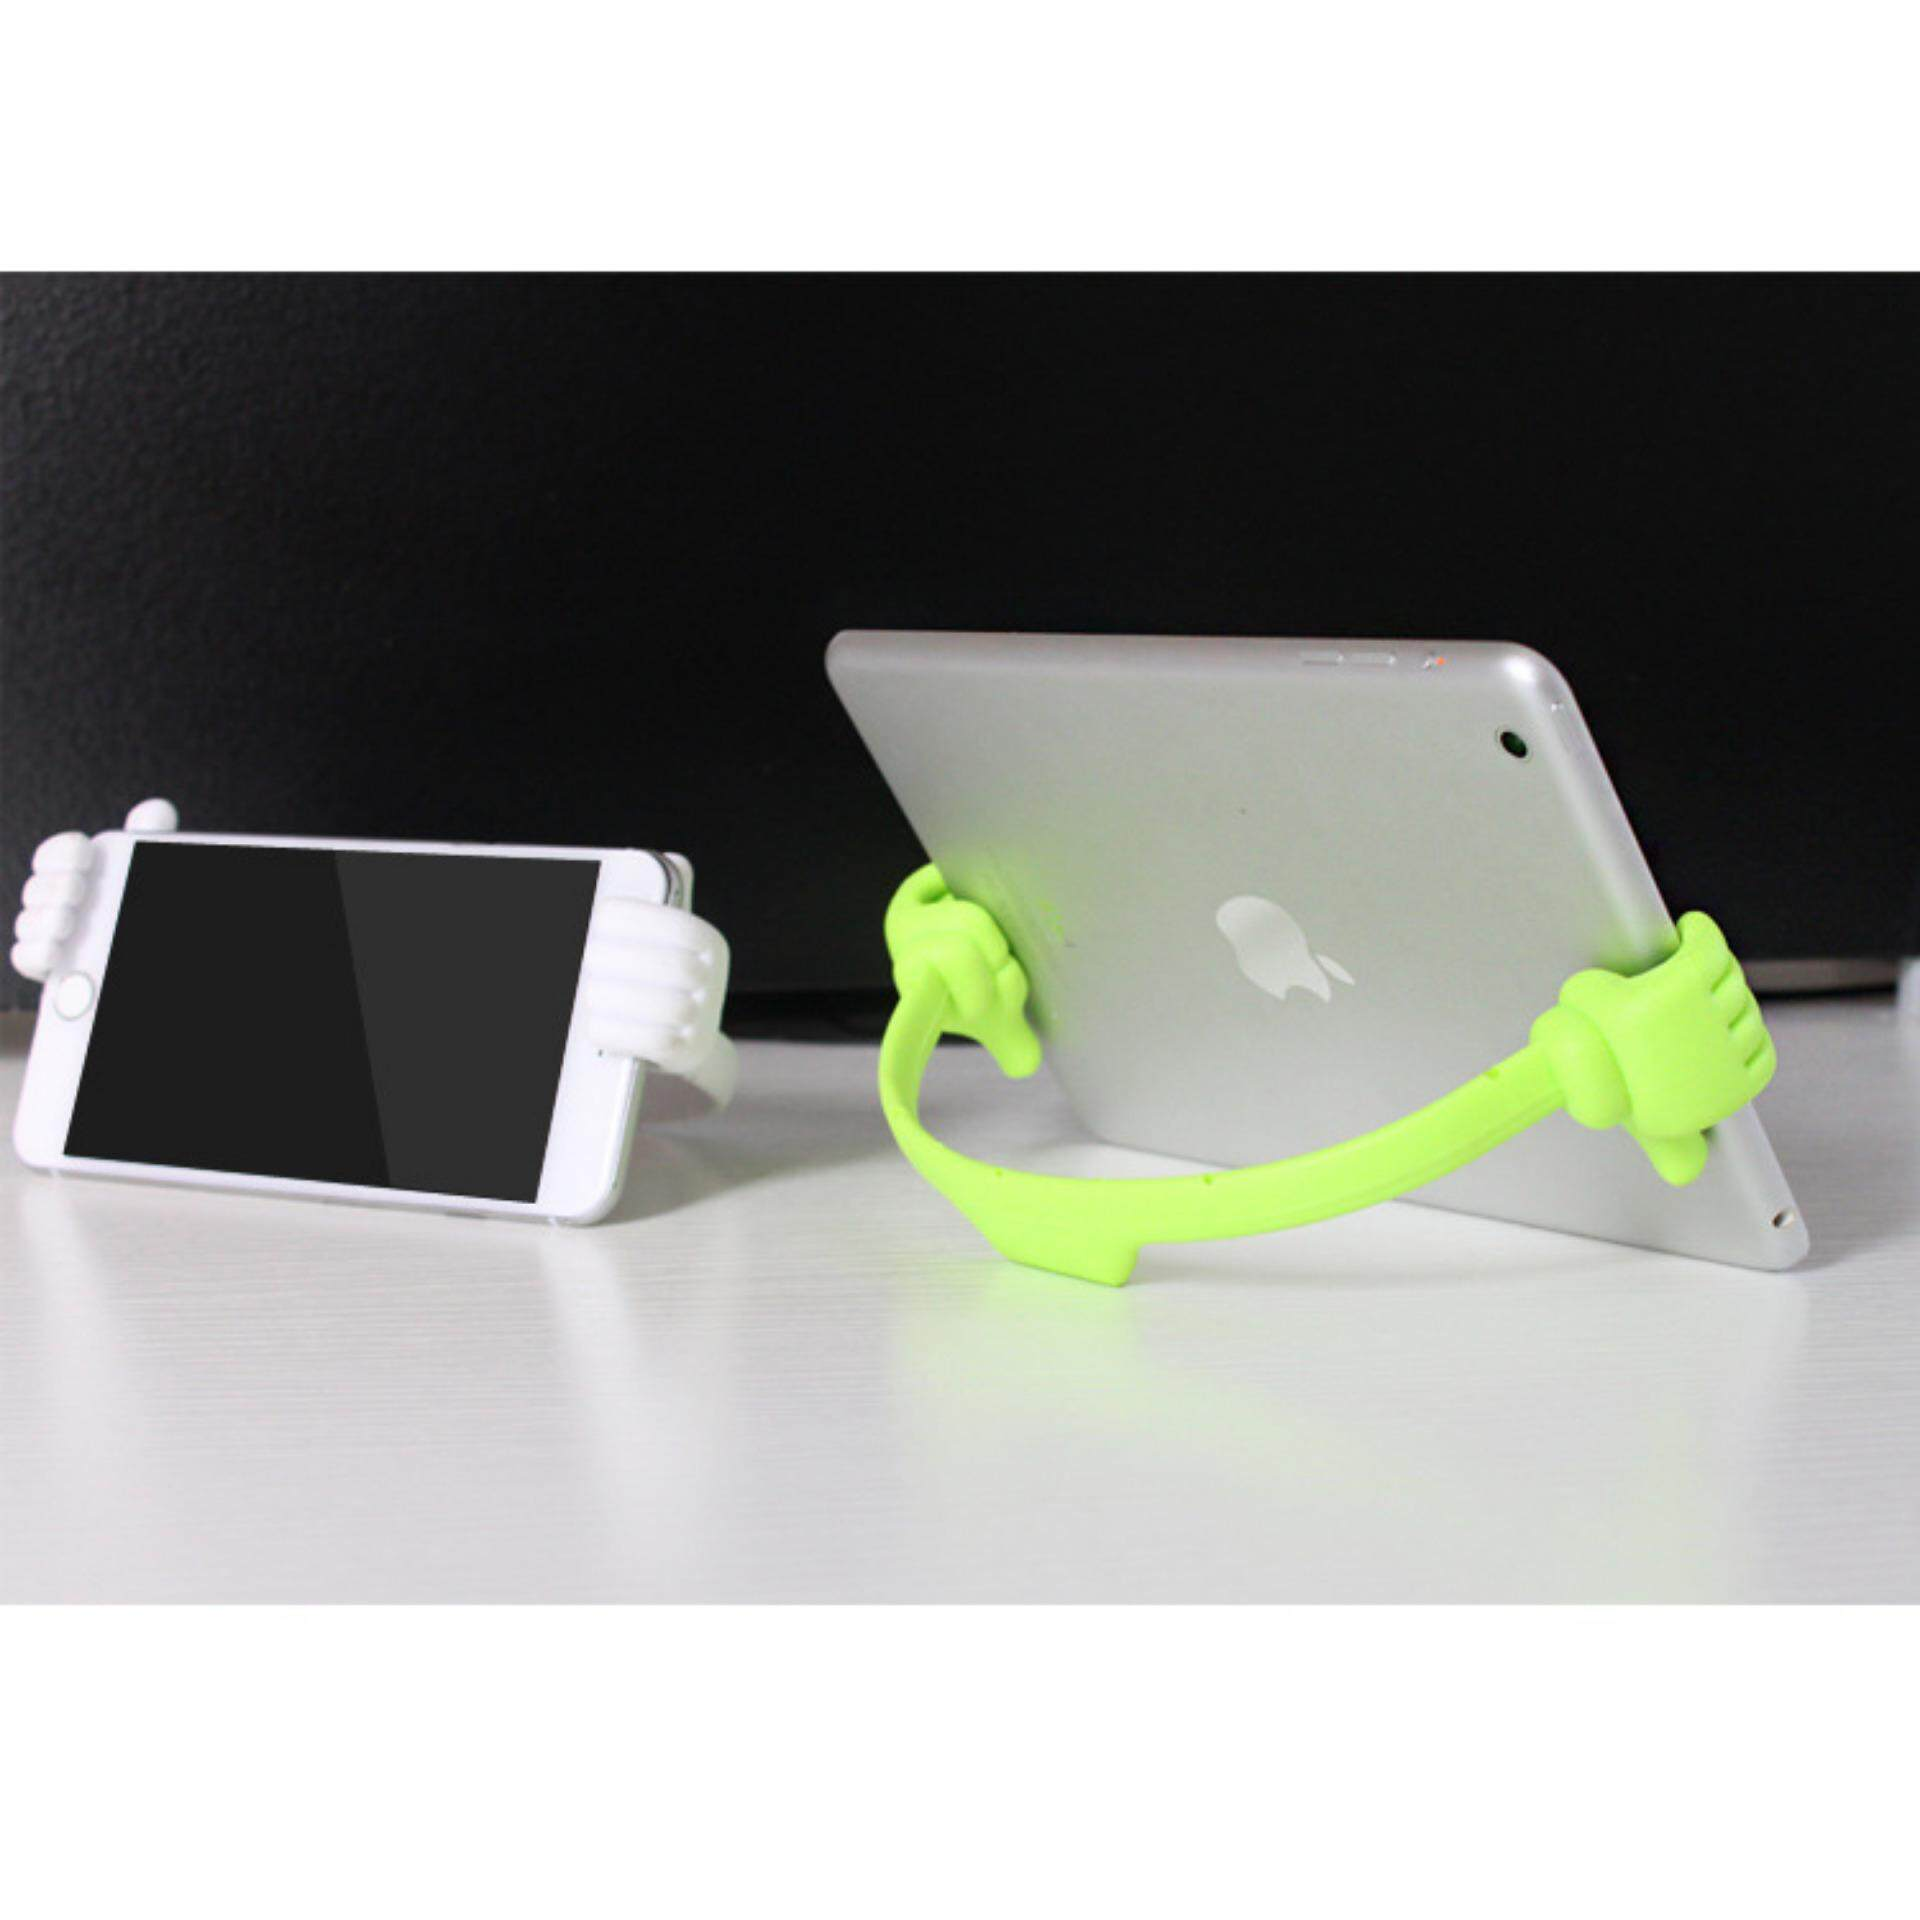 Originality Mobile Phone Holder Thumbs Modeling Phone Stand Bracket Holder Mount for IPhone6 Samsung Cell Phone